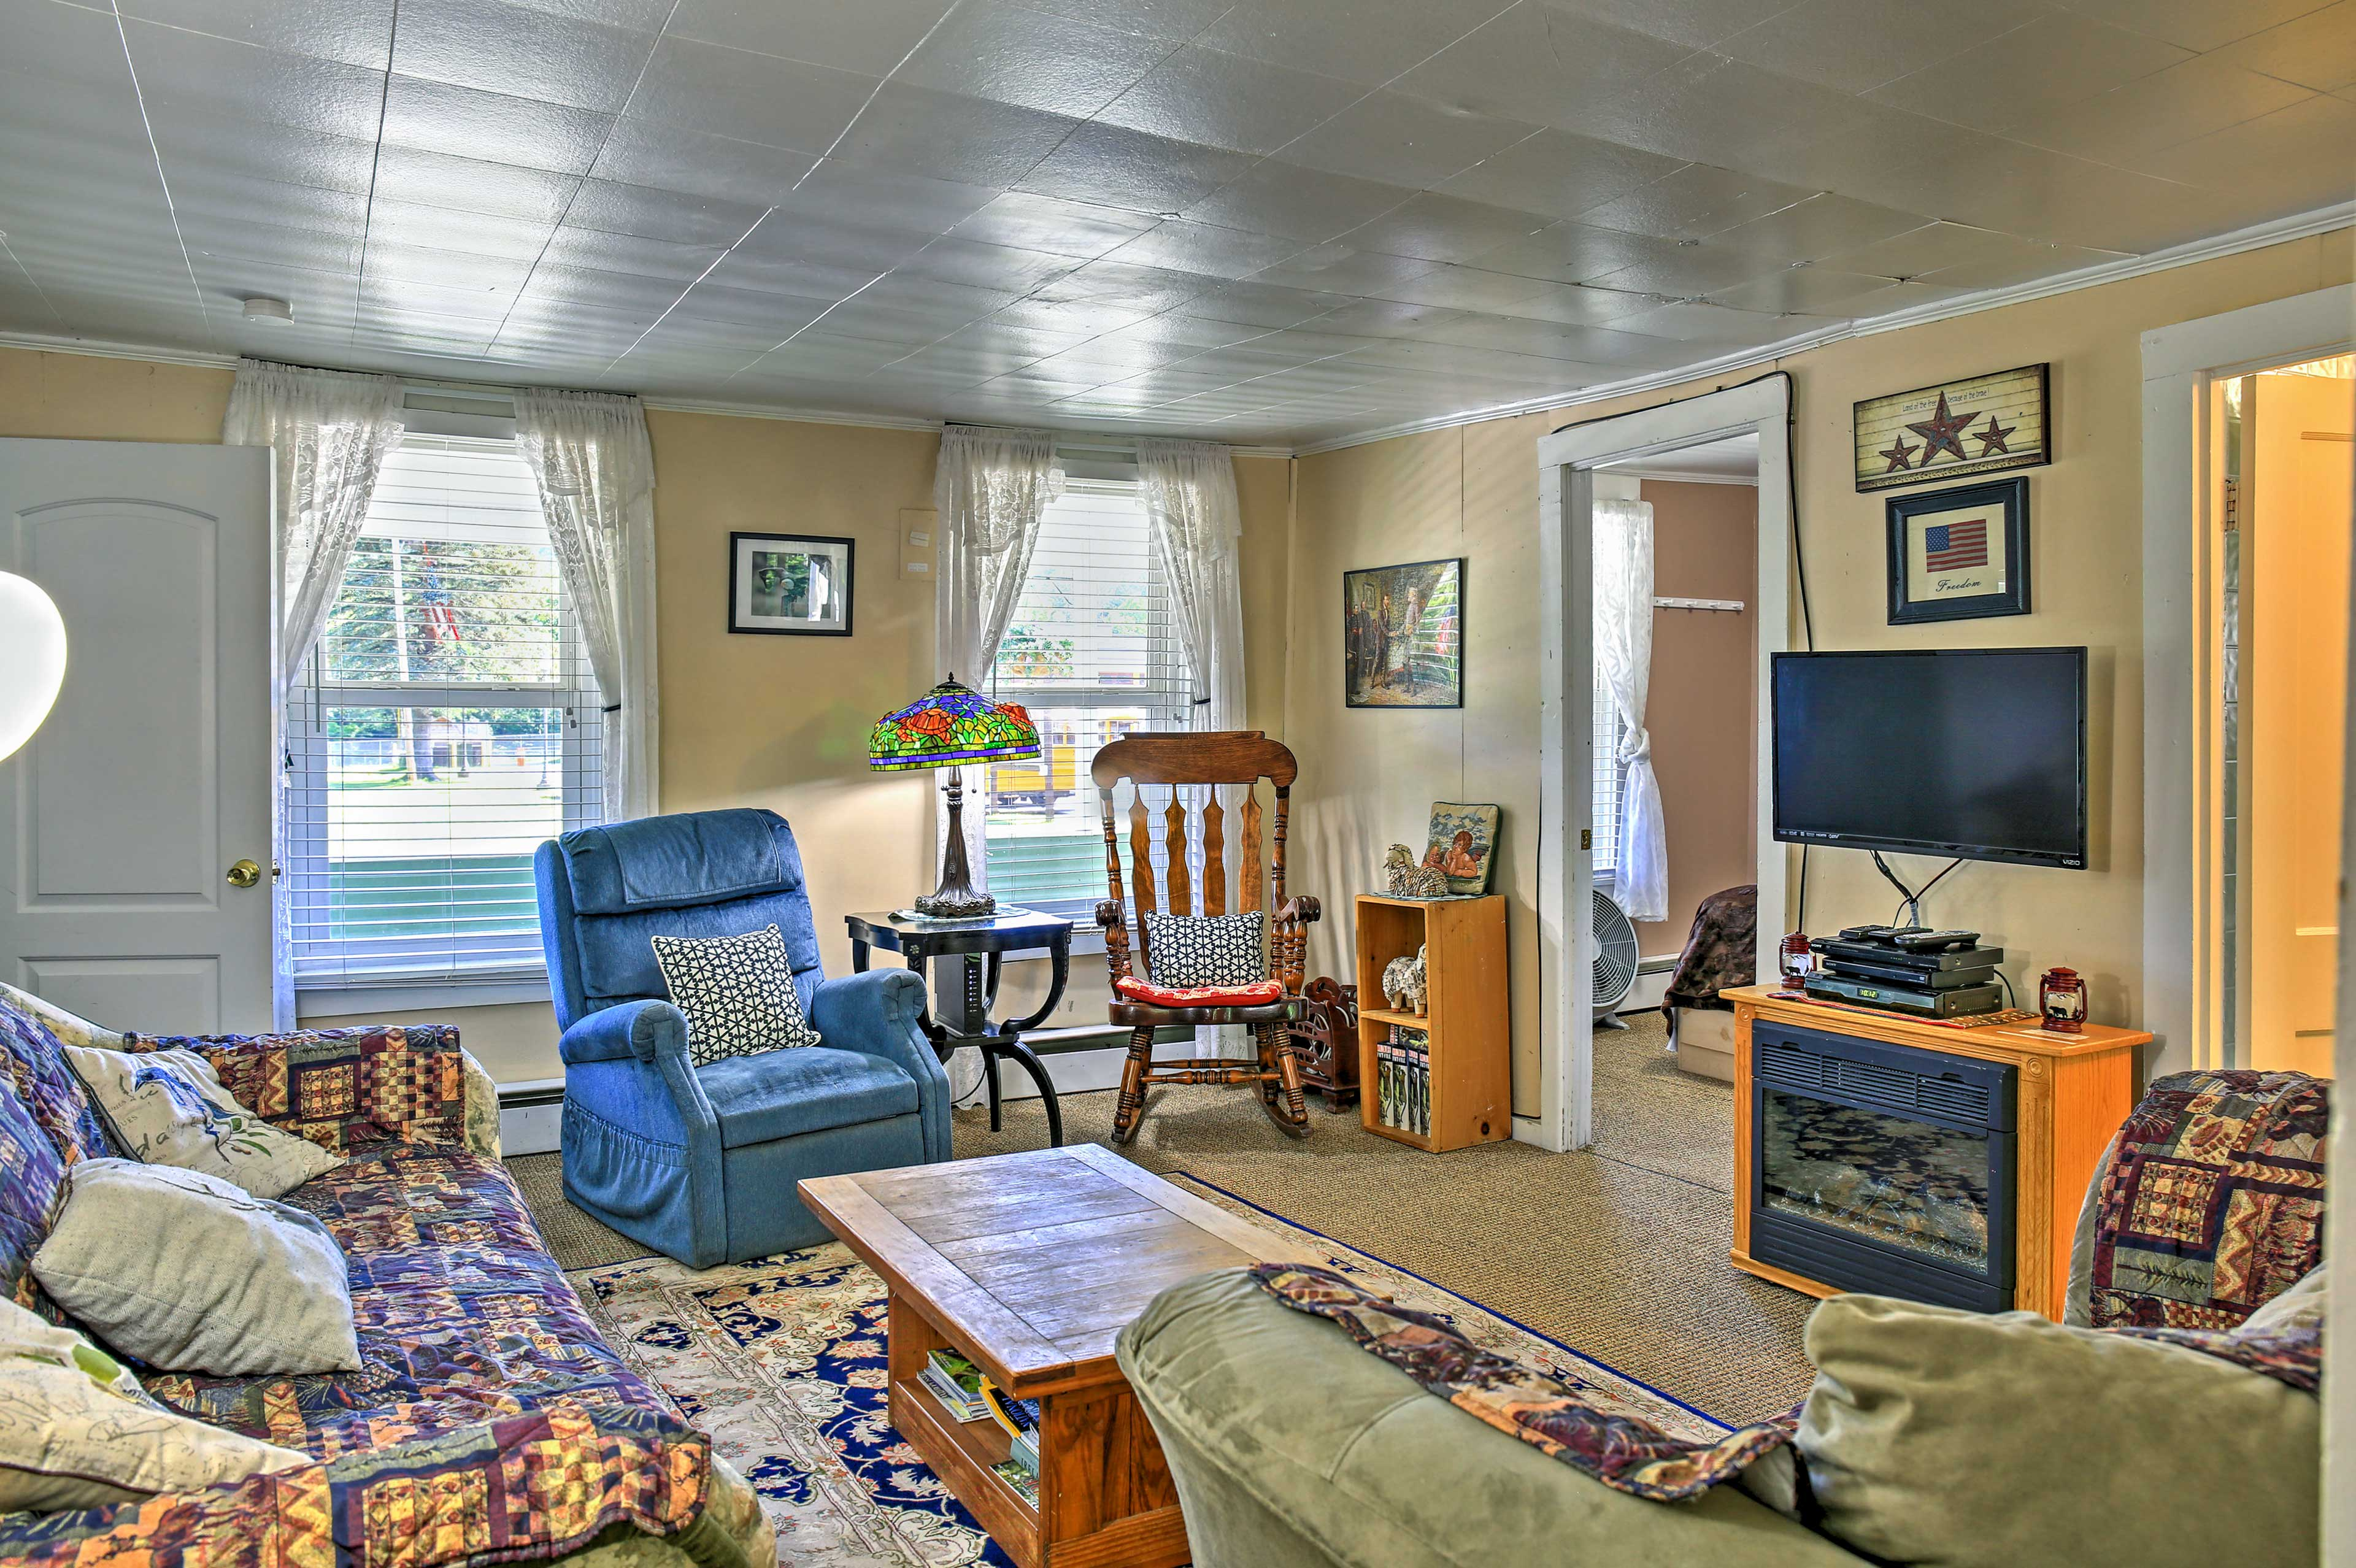 Unwind in the living room next to the electric fireplace and enjoy movie night with the group.